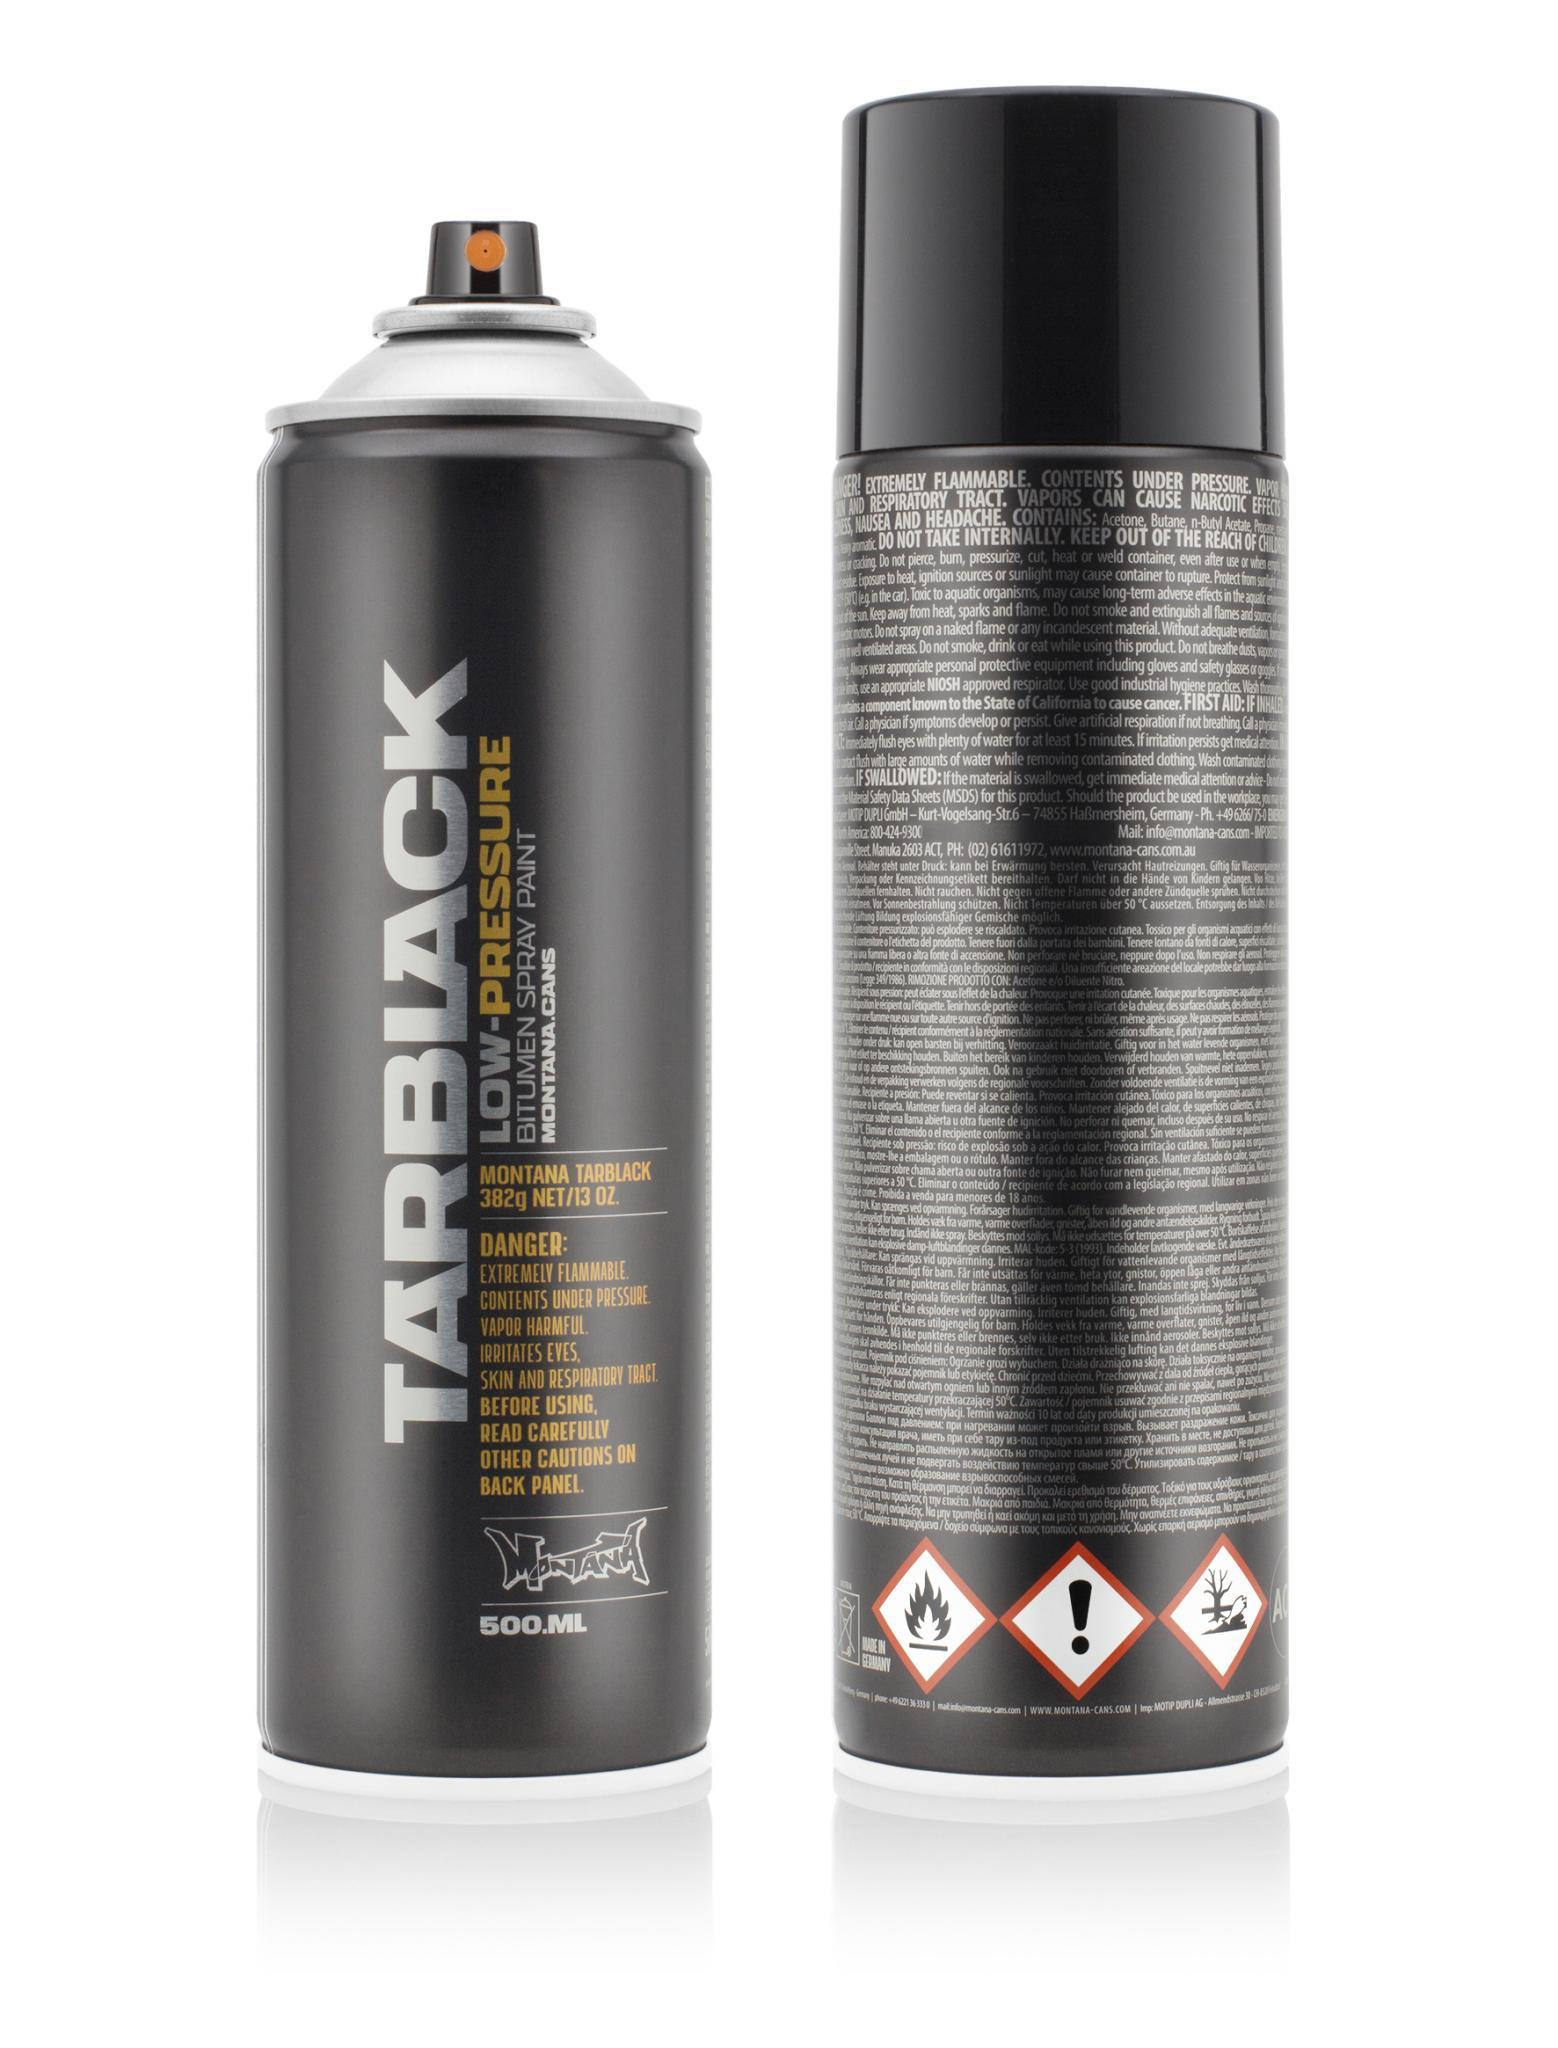 MONTANA-TARBLACK-SPRAY-500ML-03.jpg